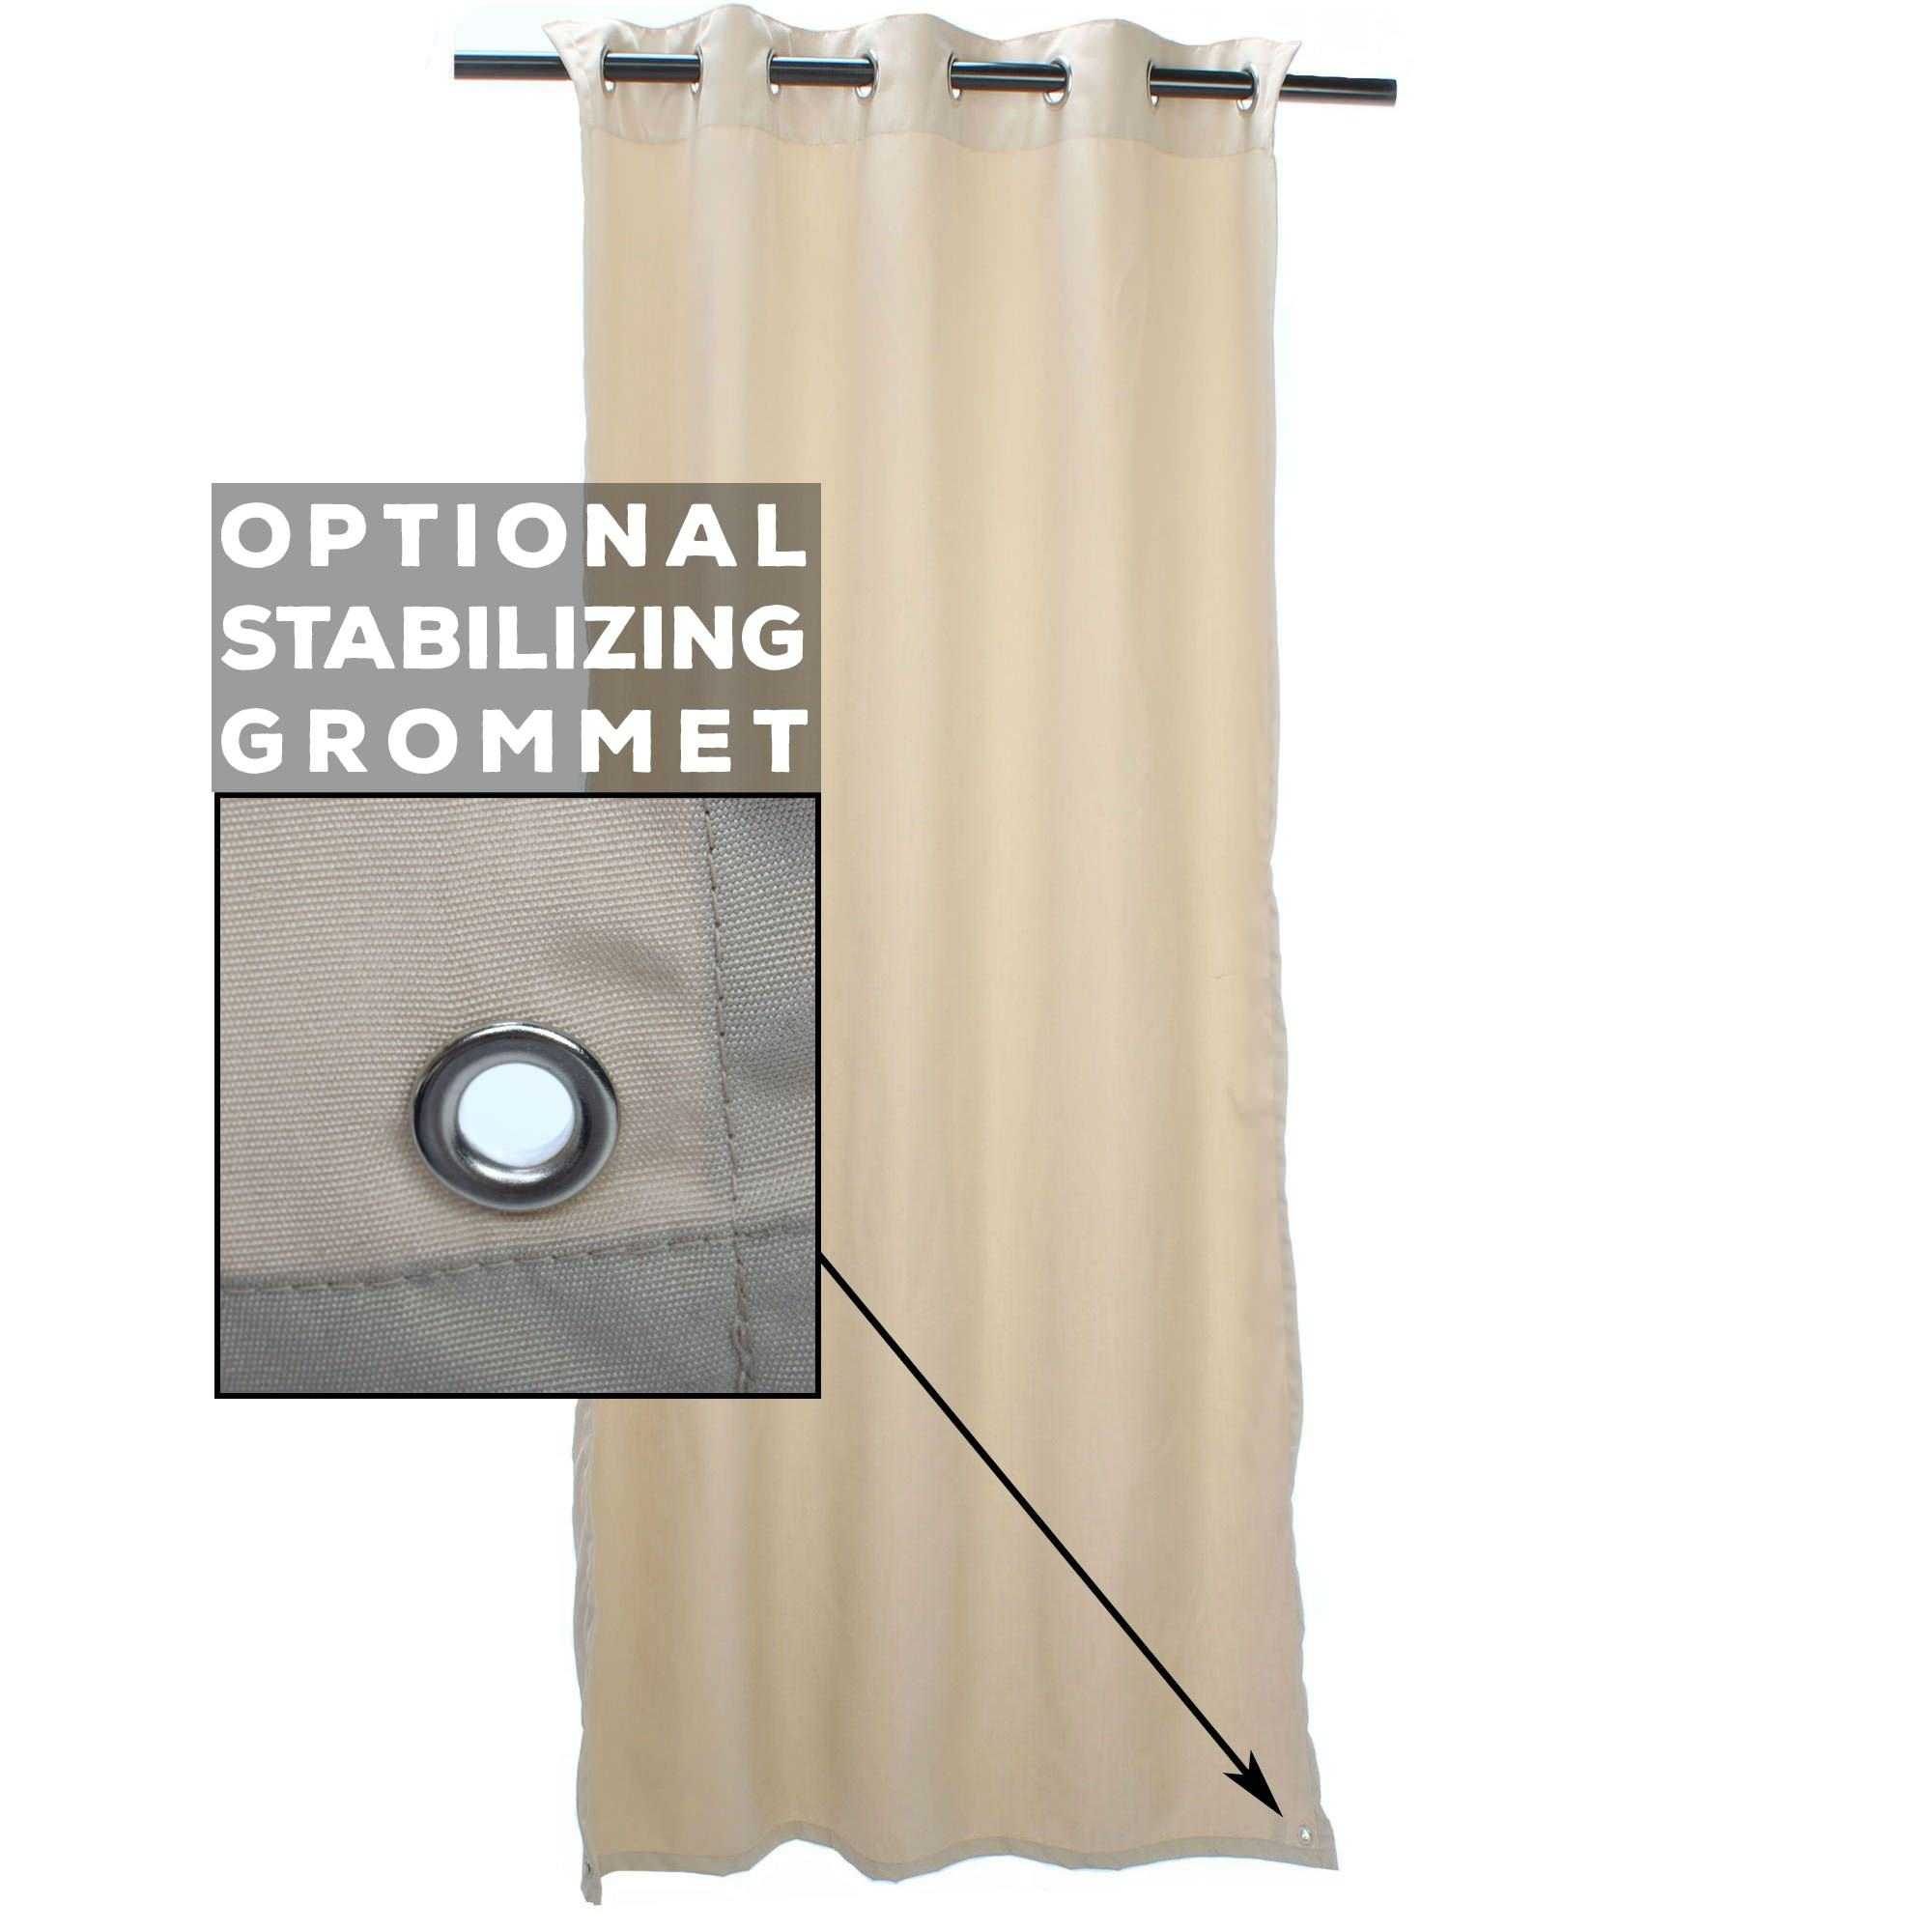 Mist Sunbrella Outdoor Curtain with Tabs by Essentials by DFO